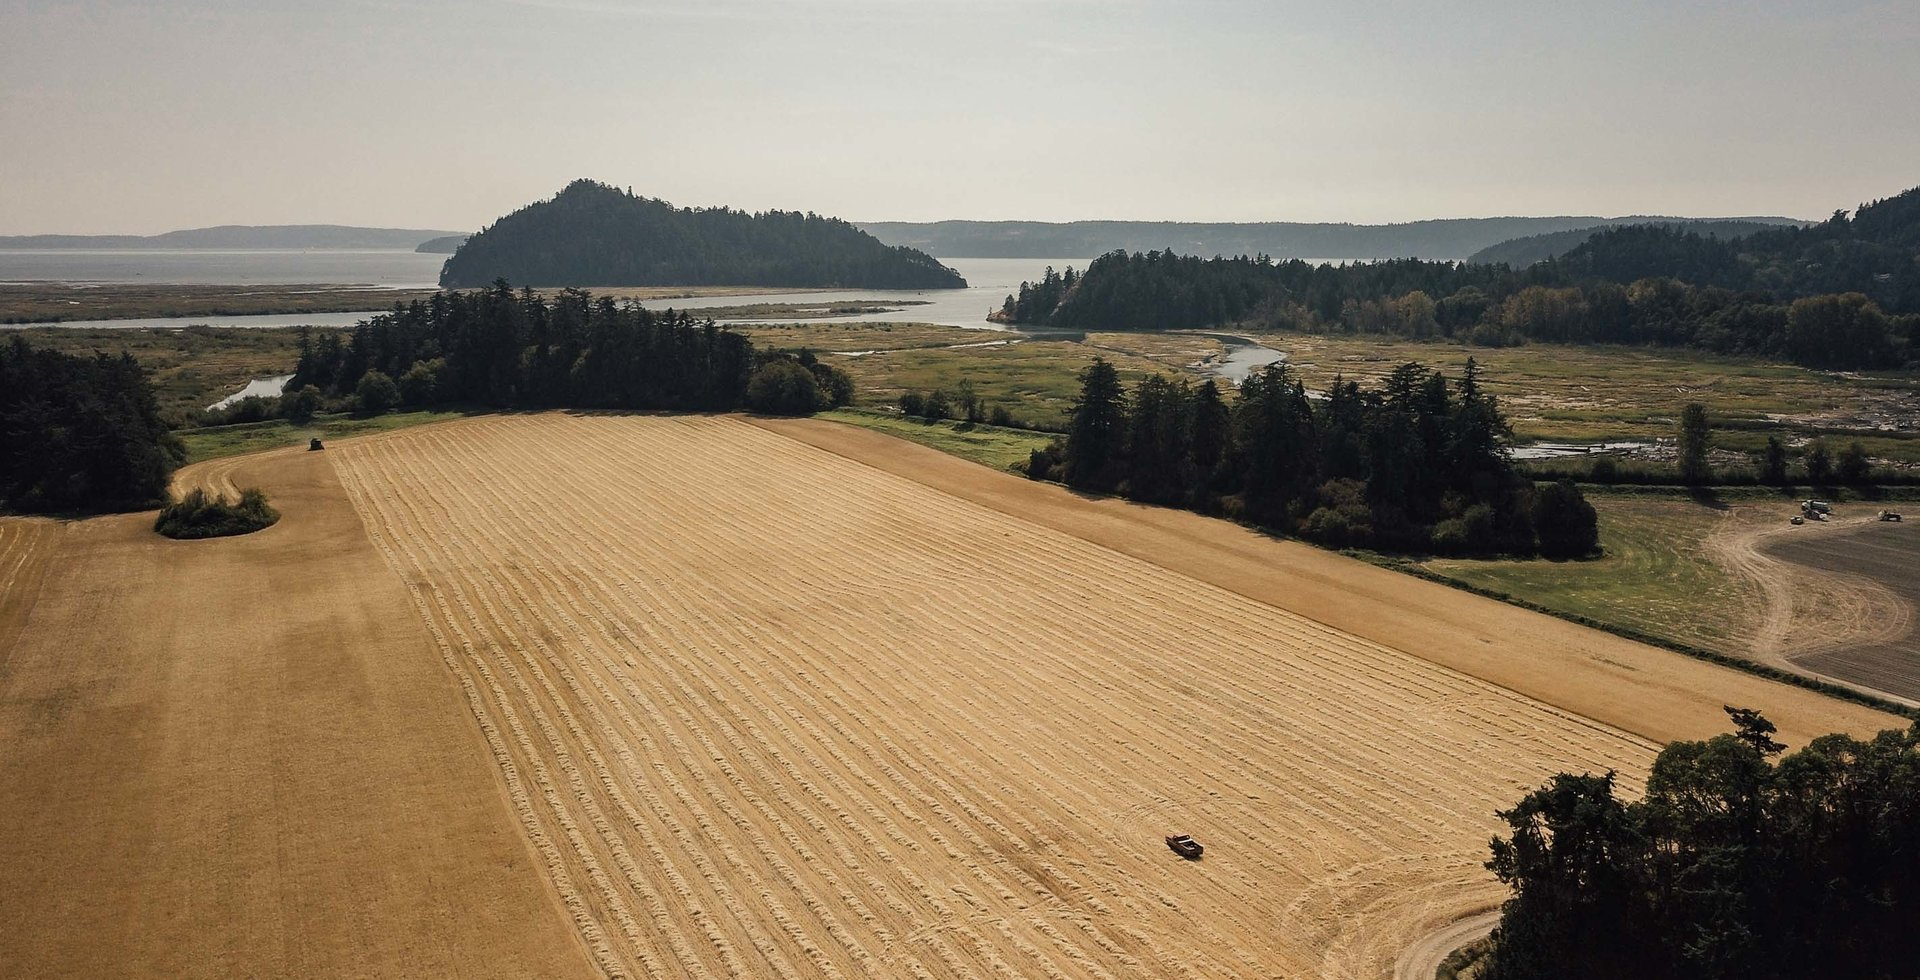 The Skagit Valley and Bay deliver a beautiful backdrop to the region's farmland. From grain to yeast, Garden Path Fermentation strives to source local. Photo courtesy of Skagit Valley Malting